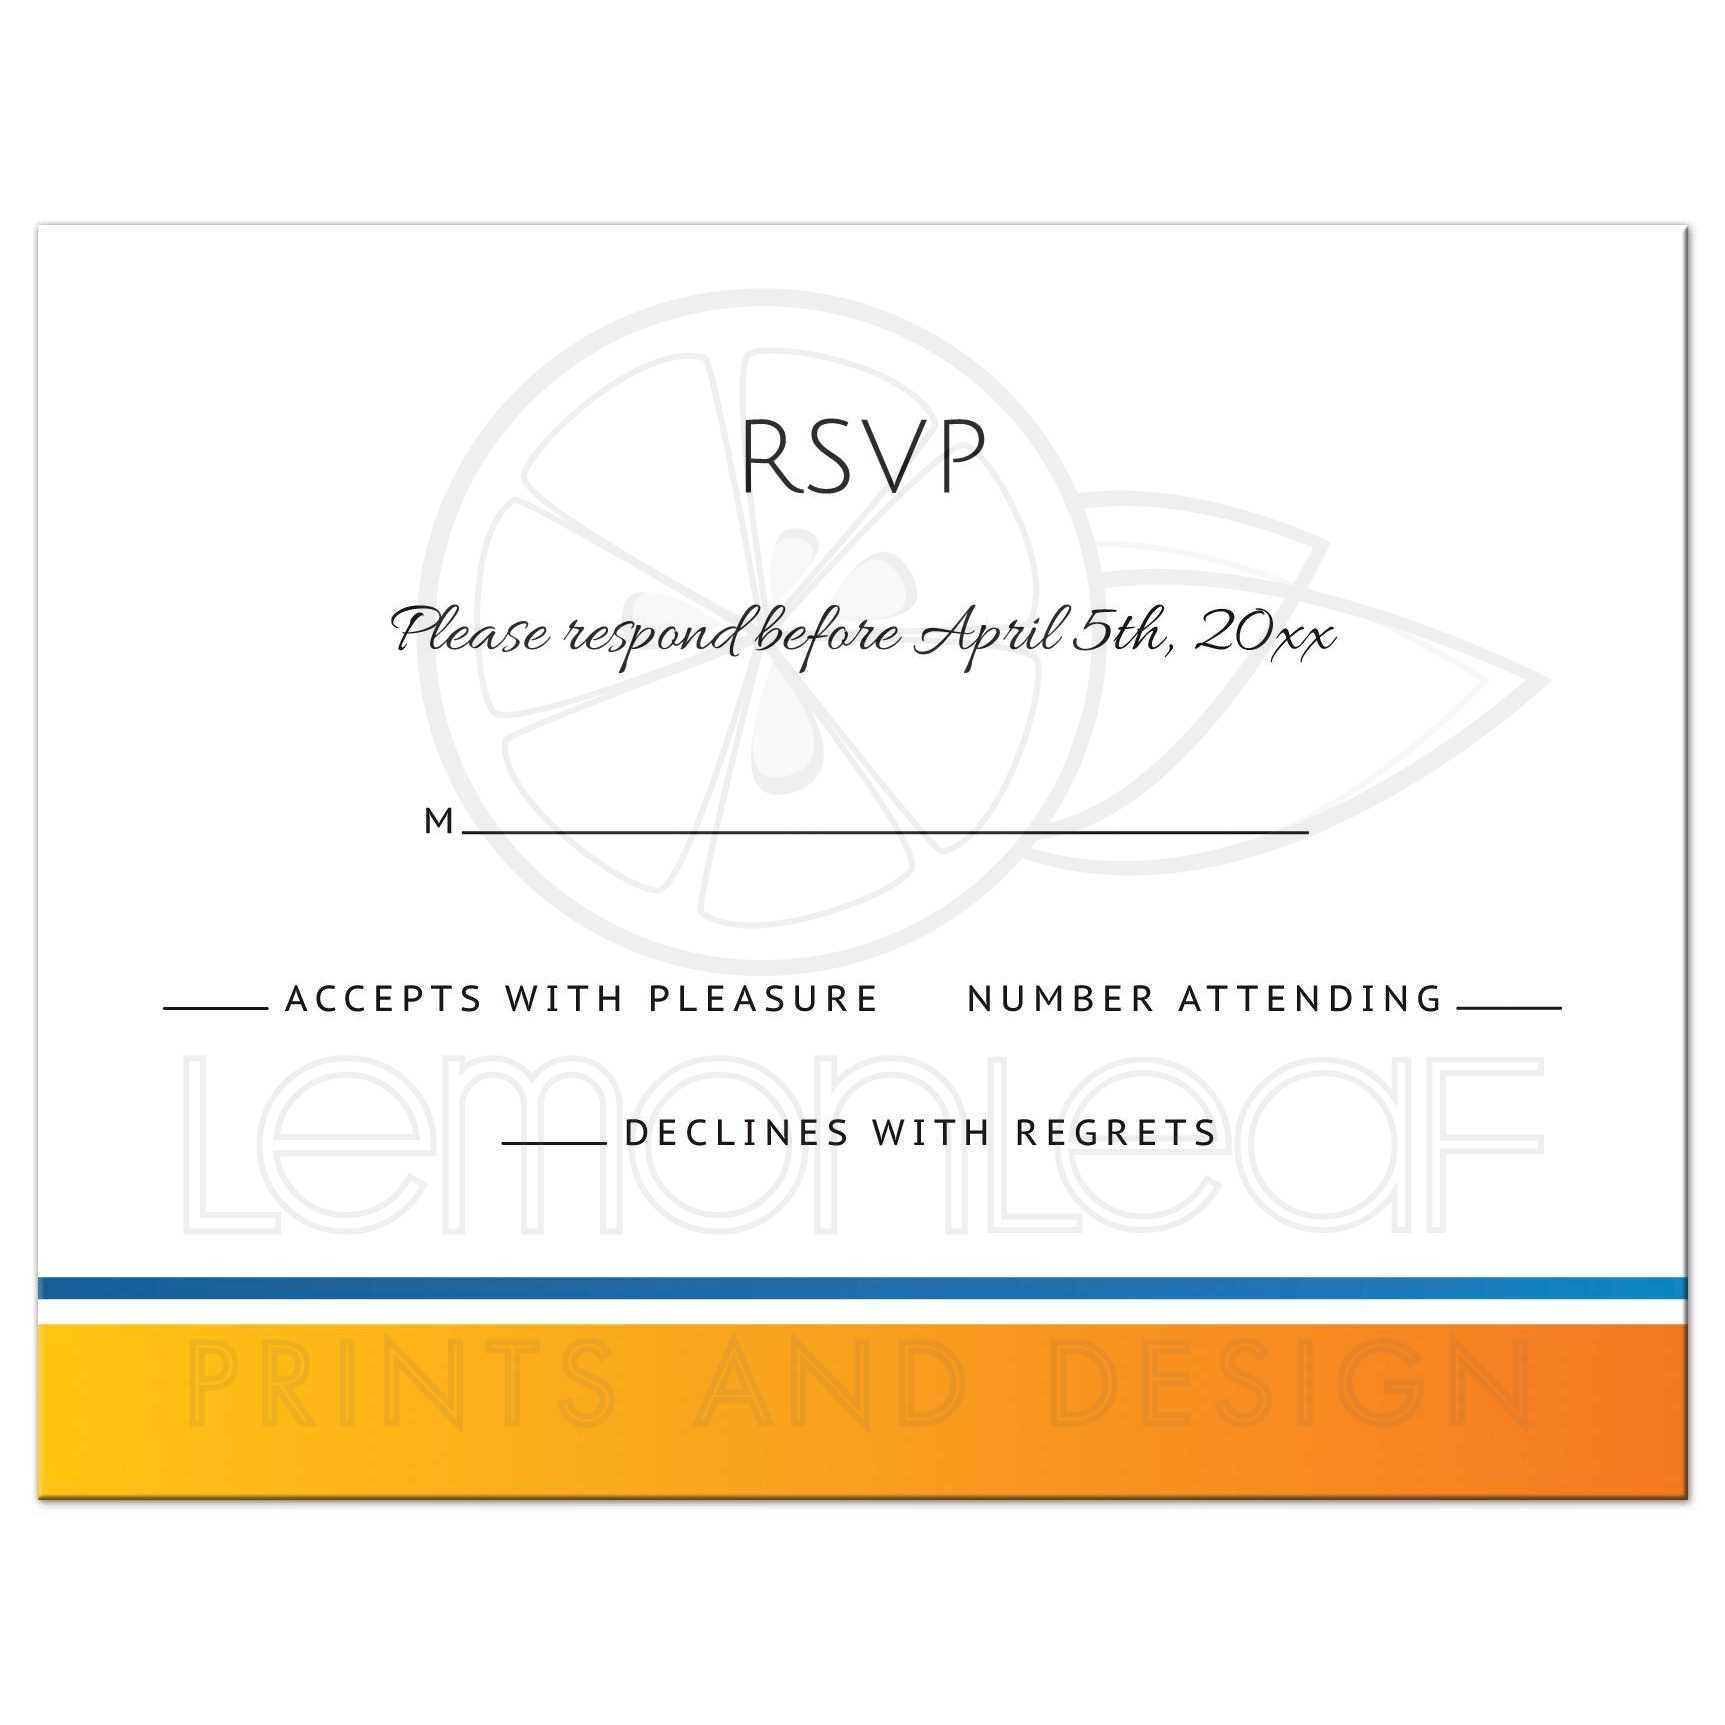 Modern Rsvp Reply Card With Yellow Orange And Blue Border Matching The Sun And Wave Wedding Invitation